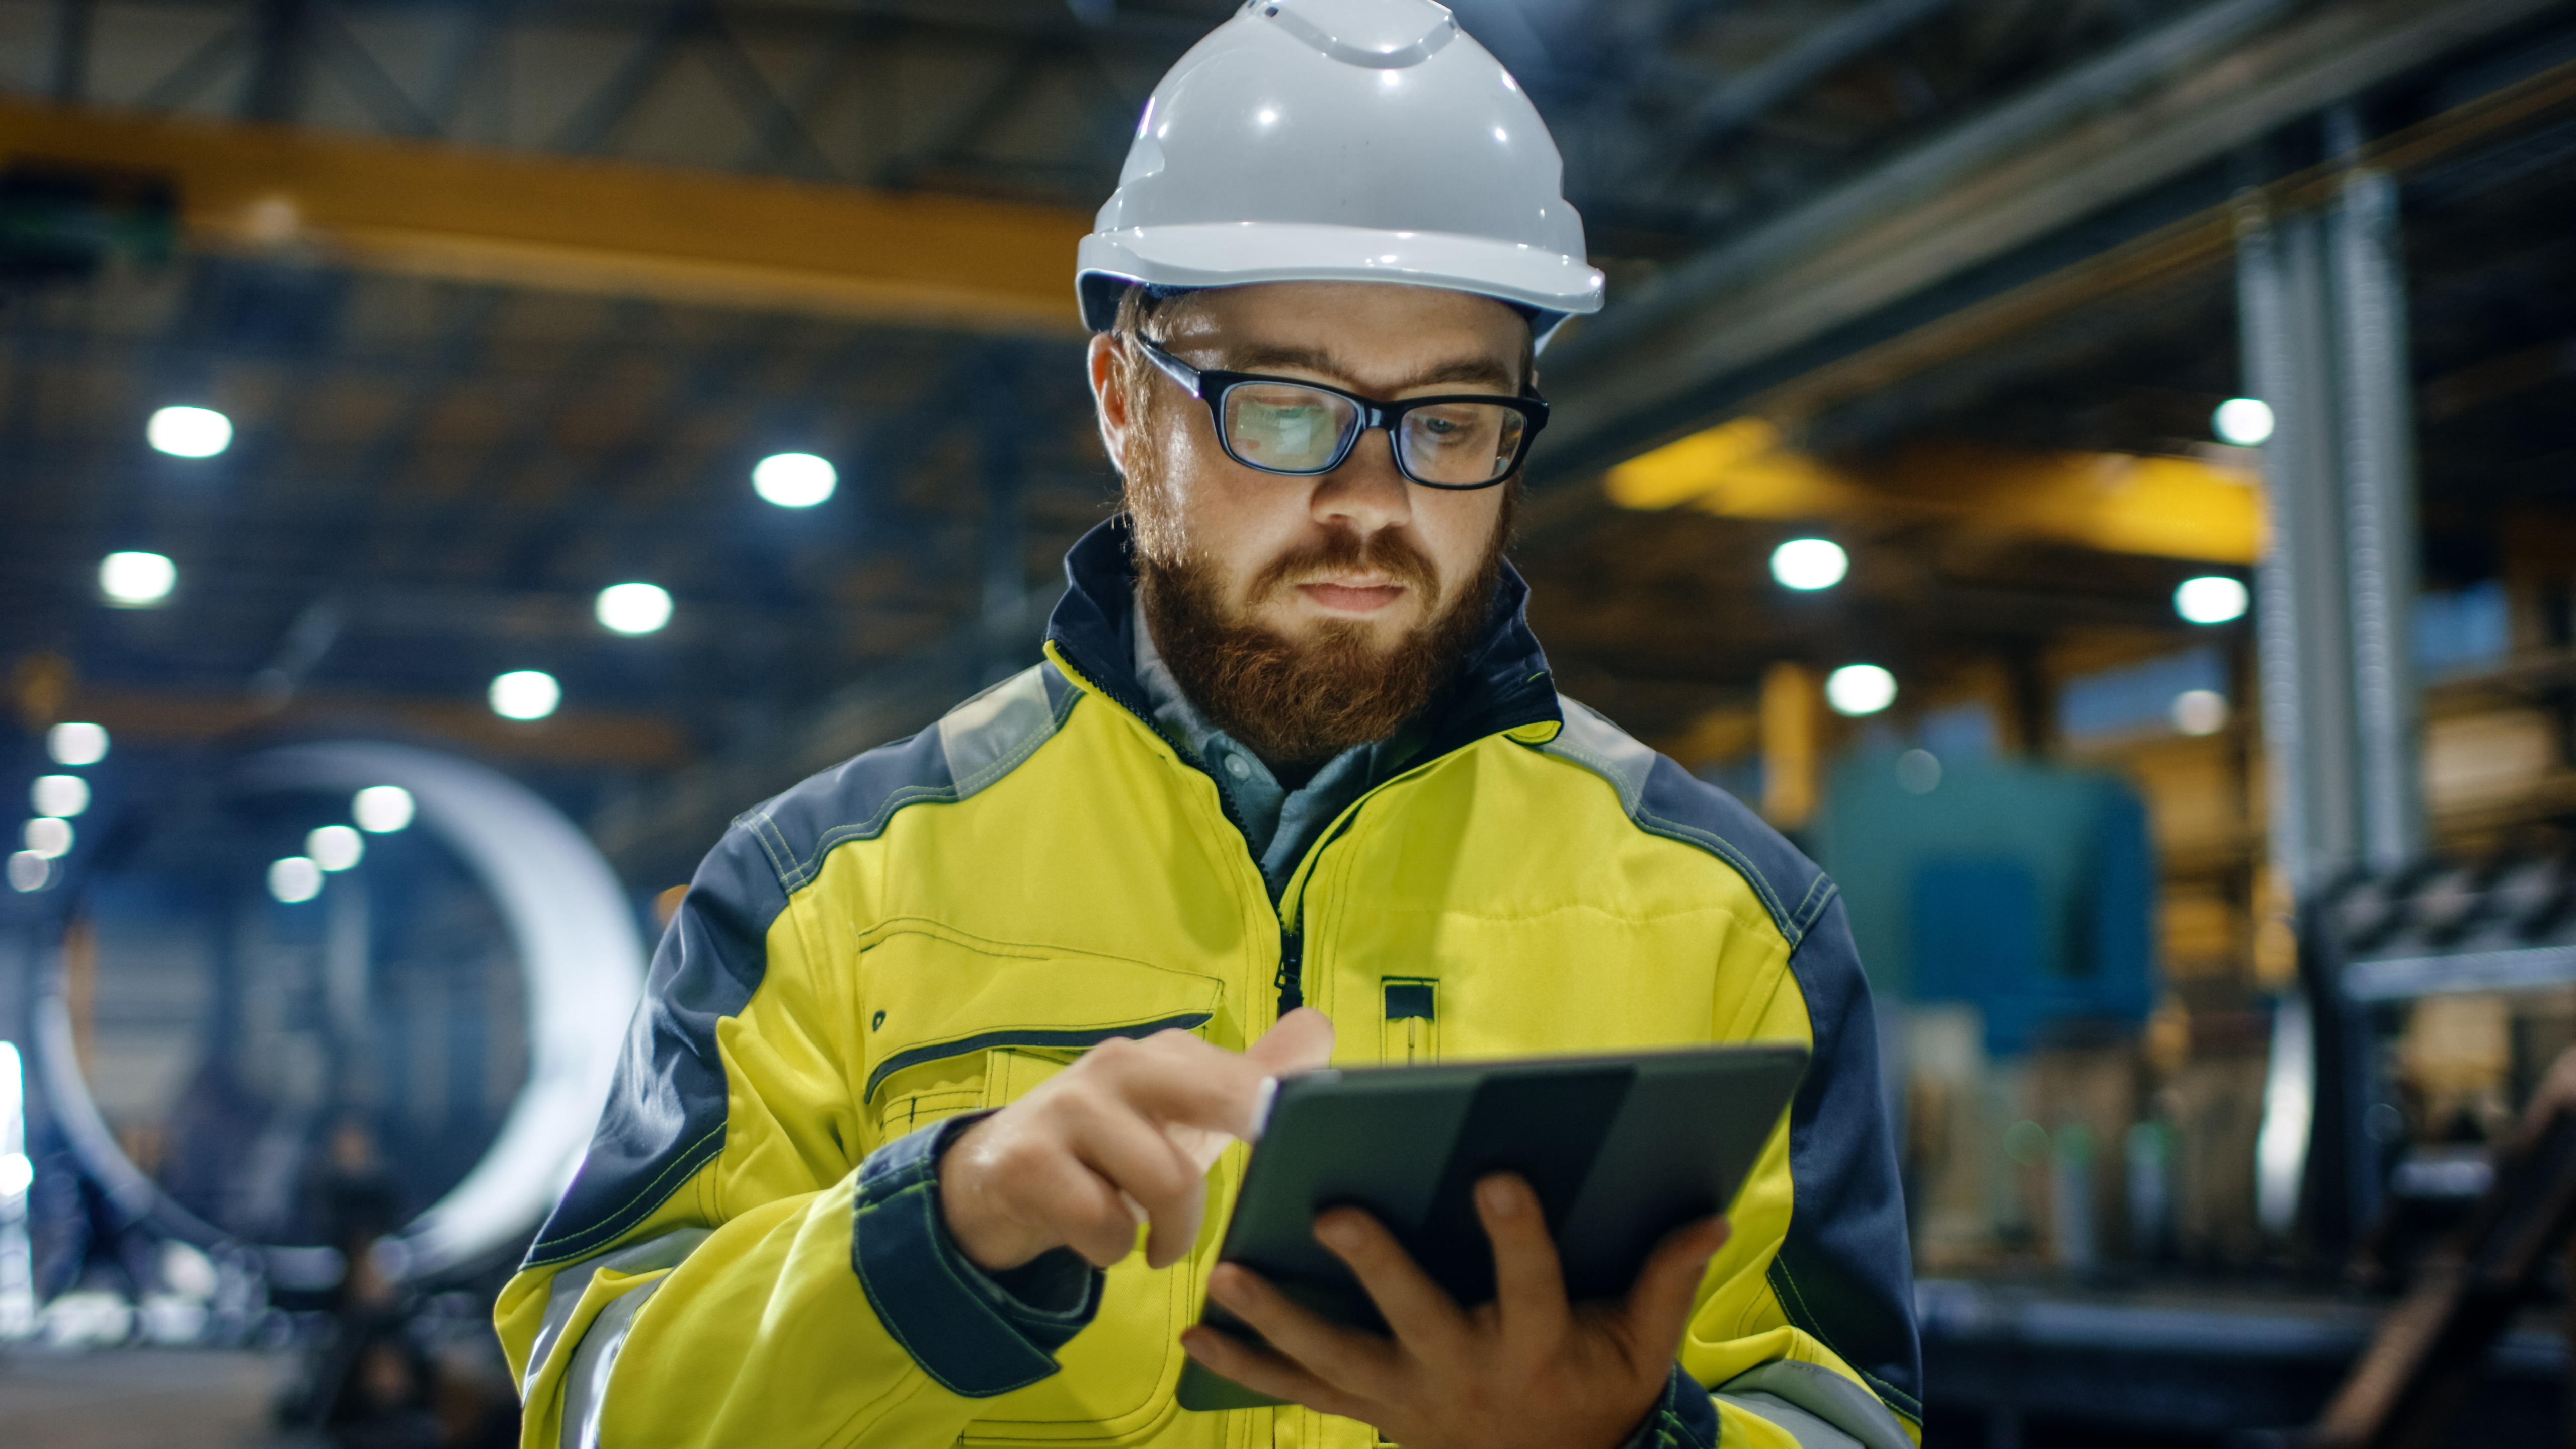 Inspection Solutions is a Mobile Inspection App With The Critical Features Required By Field Inspectors